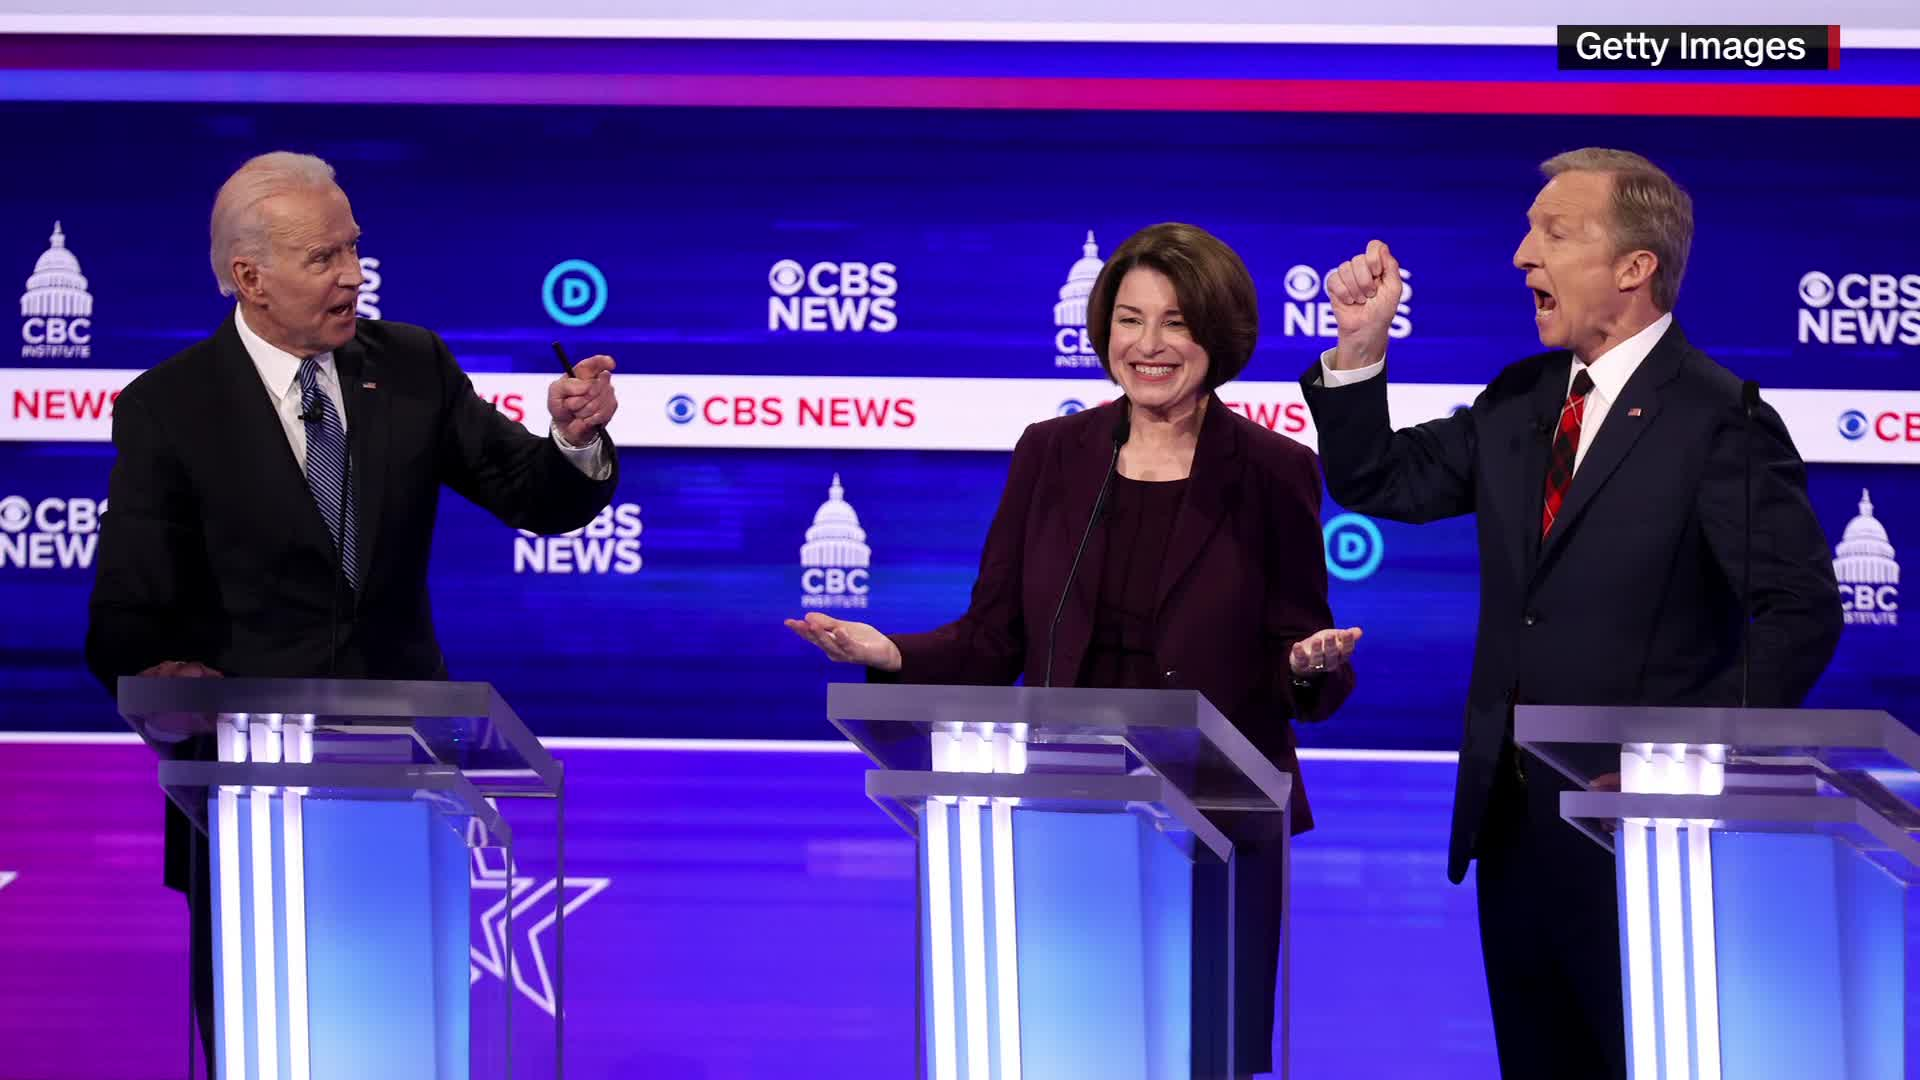 Klobuchar explains what she was thinking in heated debate moment captured in photo